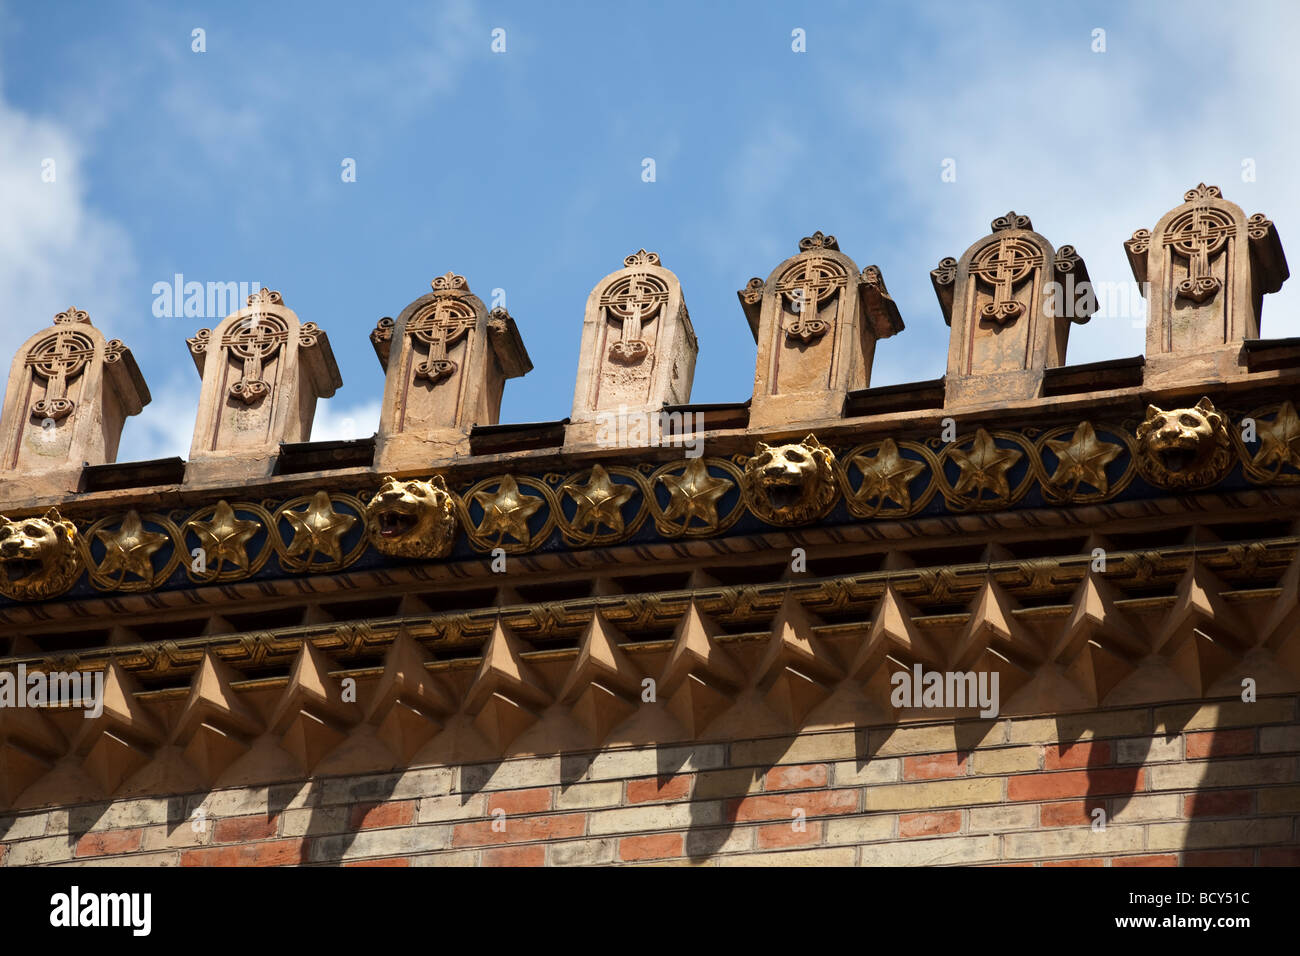 detail of crenelations, Griechische Kirche, Greek Orthodox Church of the Holy Trinity, Vienna, Austia - Stock Image